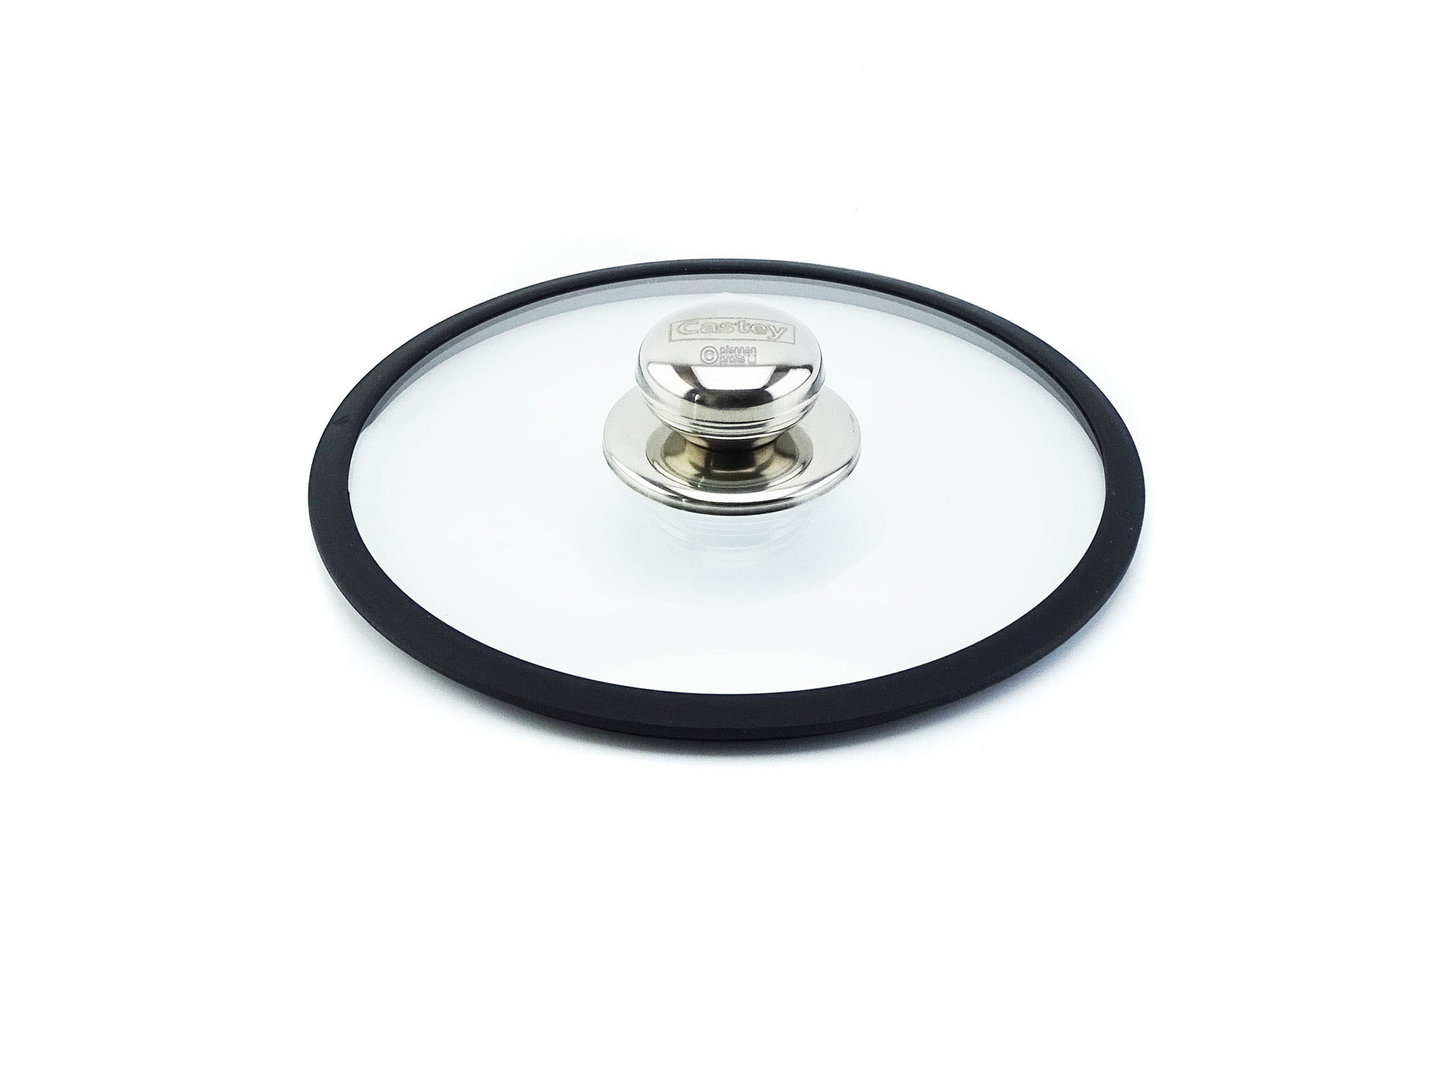 CASTEY ovenproof glass lid 20 cm with silicone rim